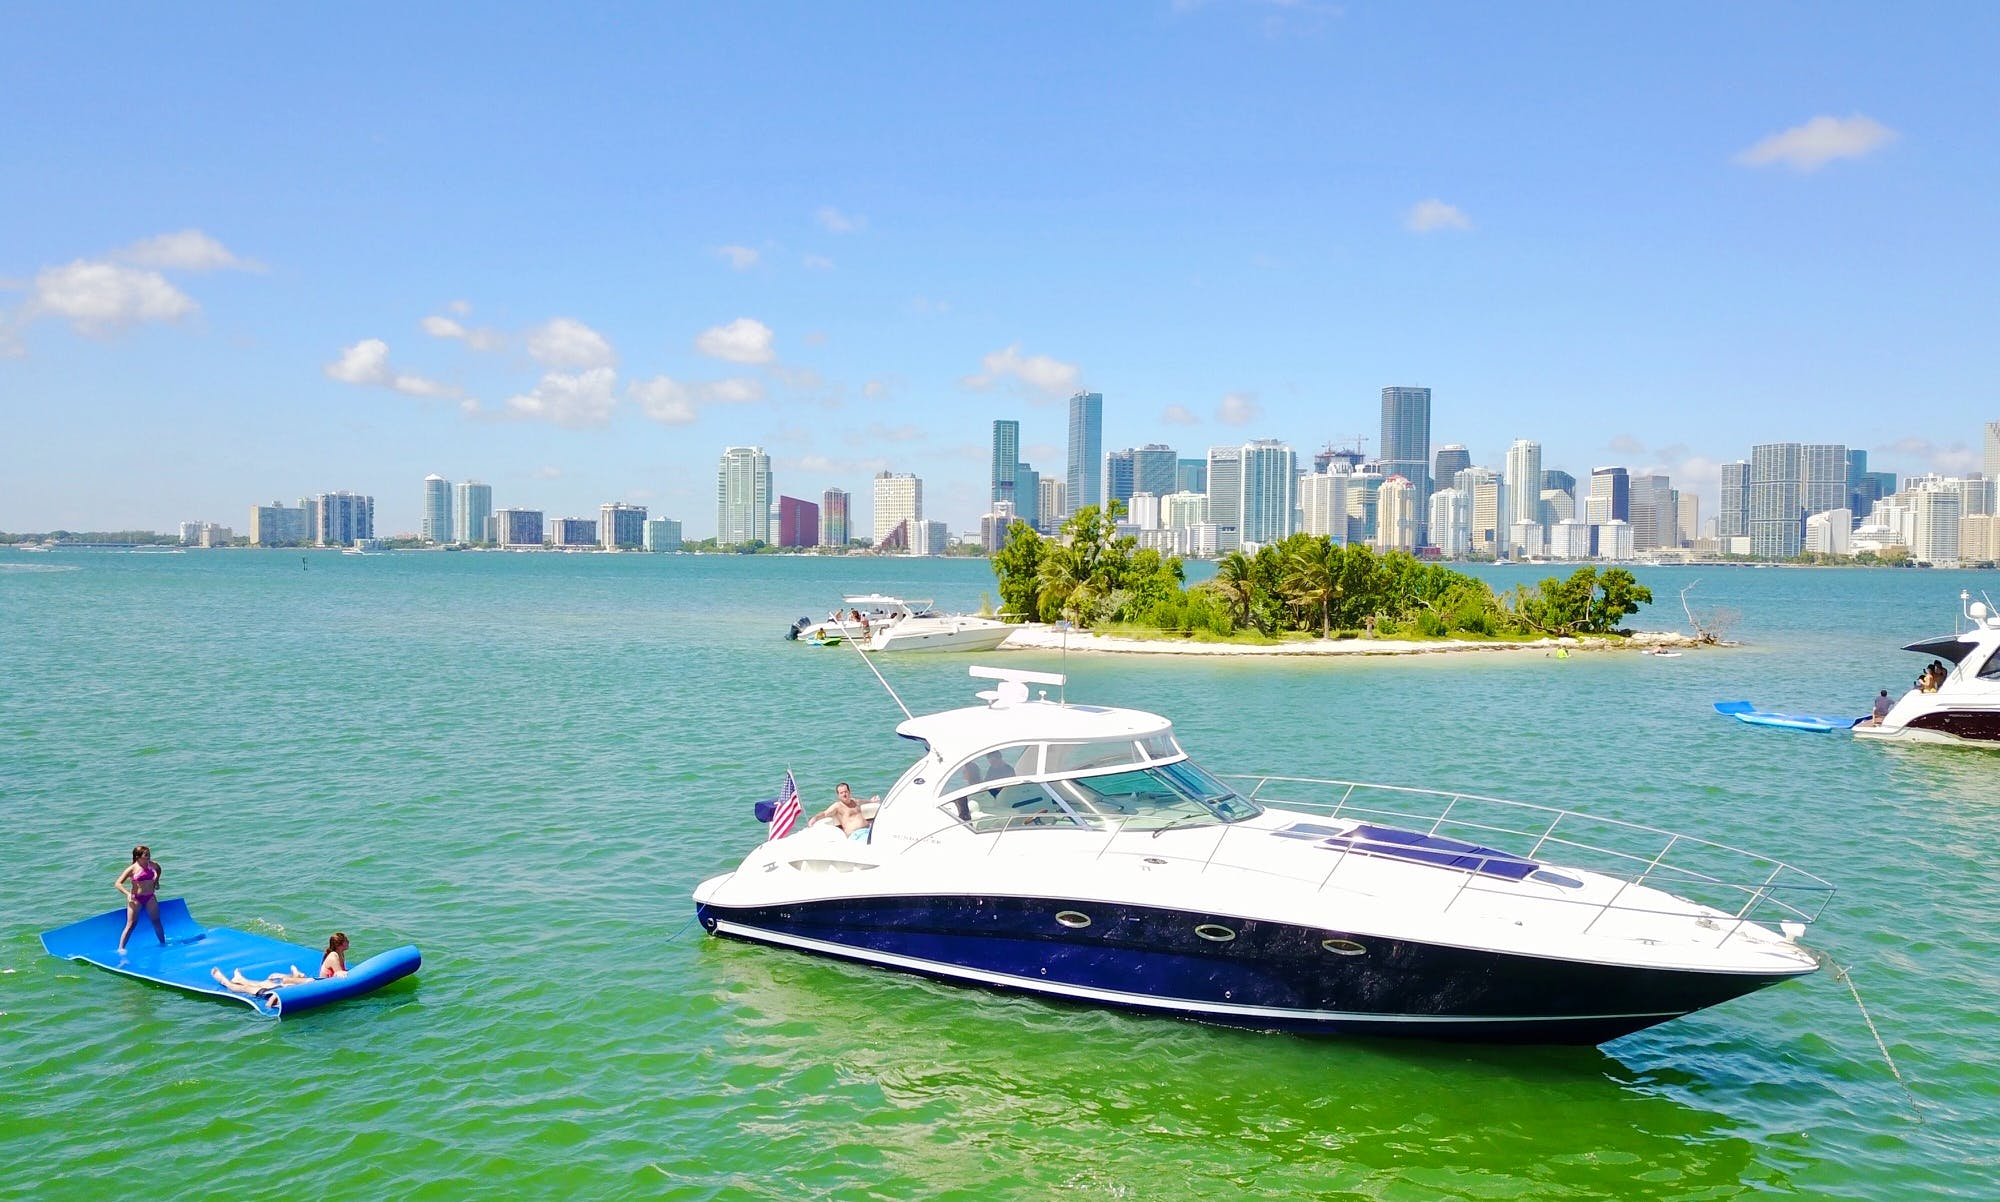 45' Sea Ray Sundancer Yacht Rental In Miami, Florida